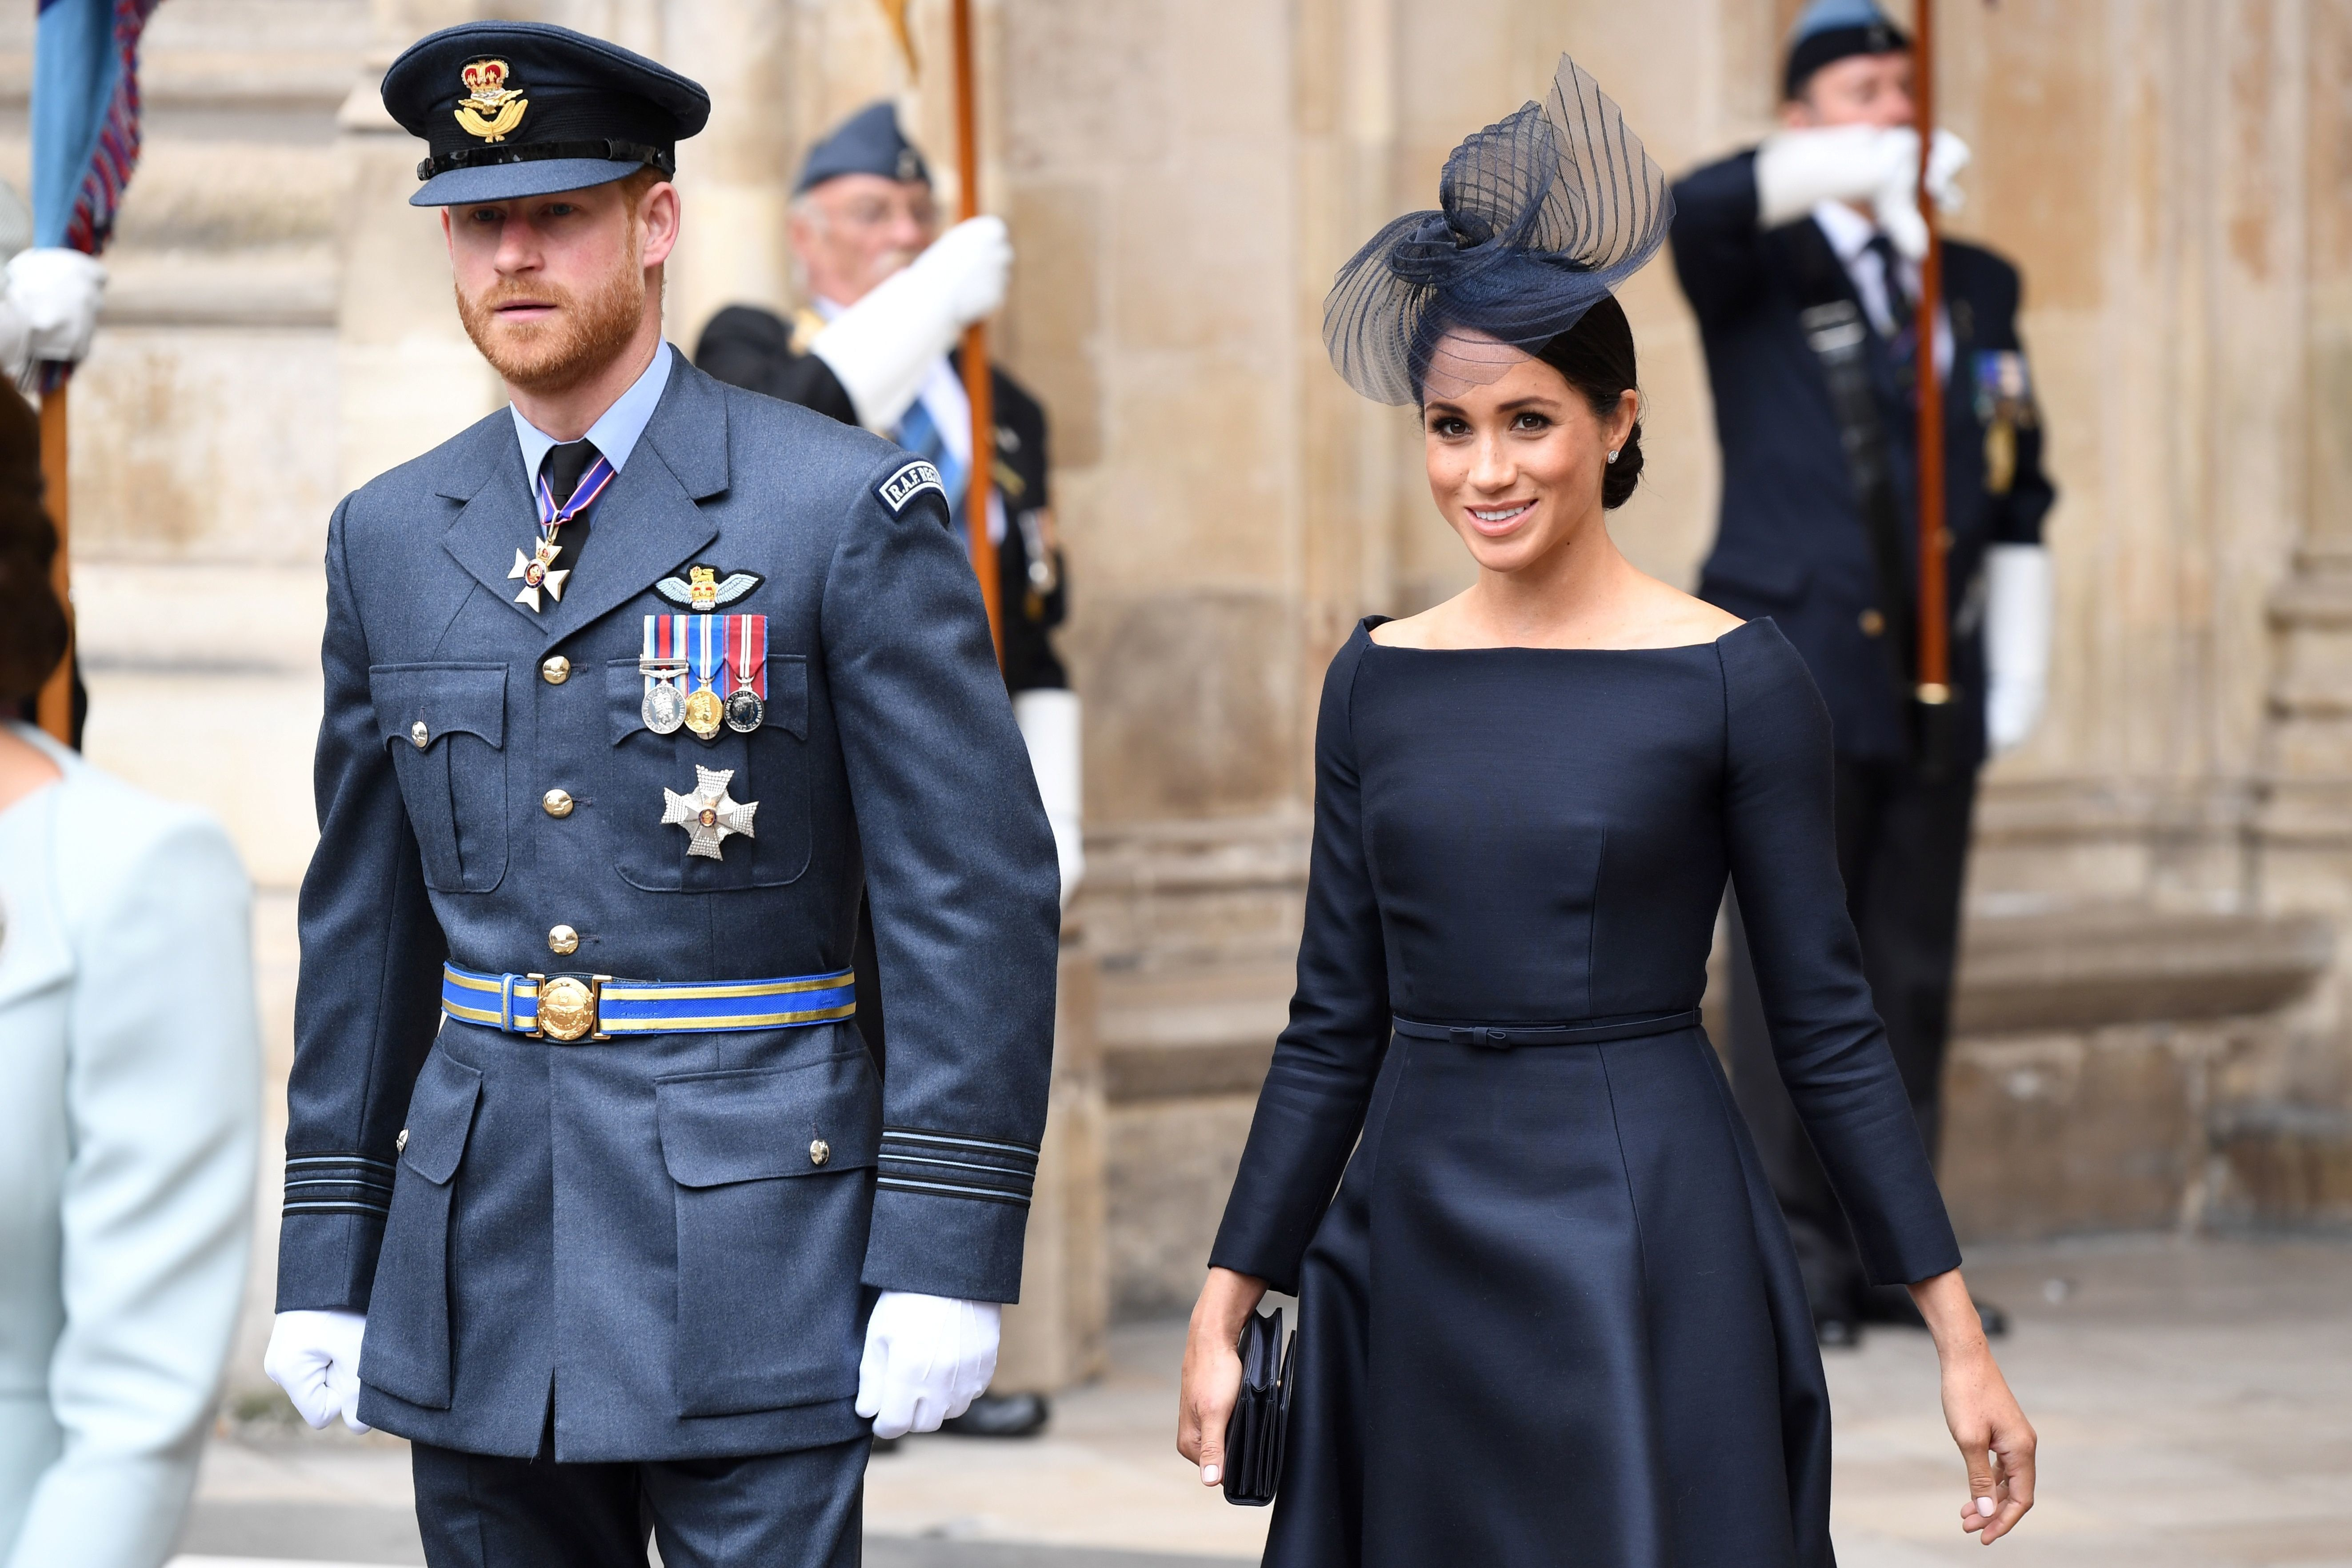 The Duke and Duchess of Sussex exiting the